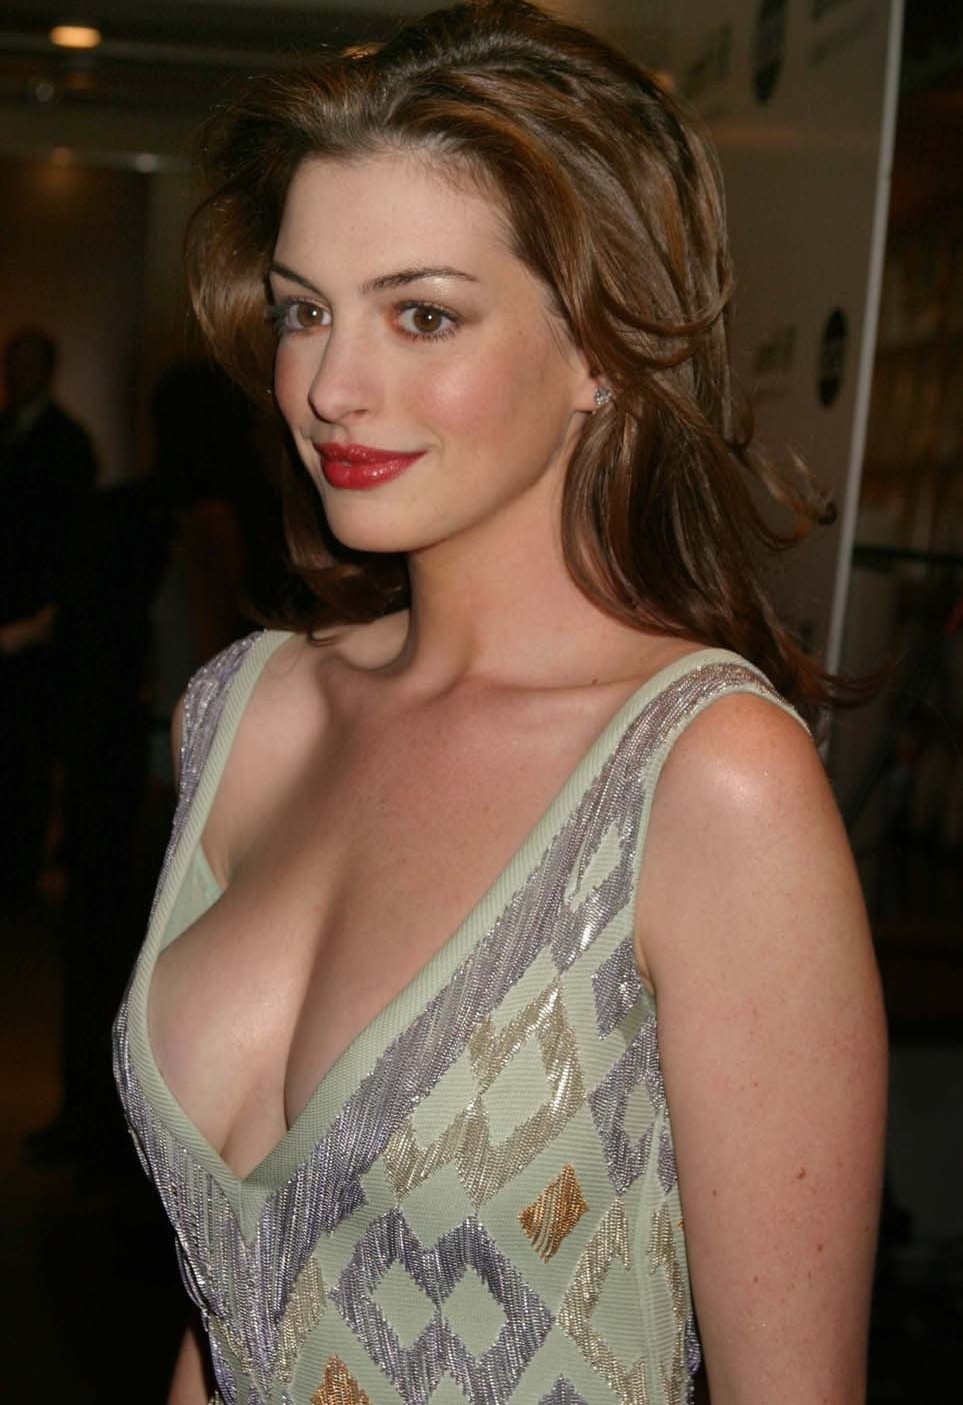 Nip Slips, Crotch Shots And Other Embarrassing Celebrity Moments